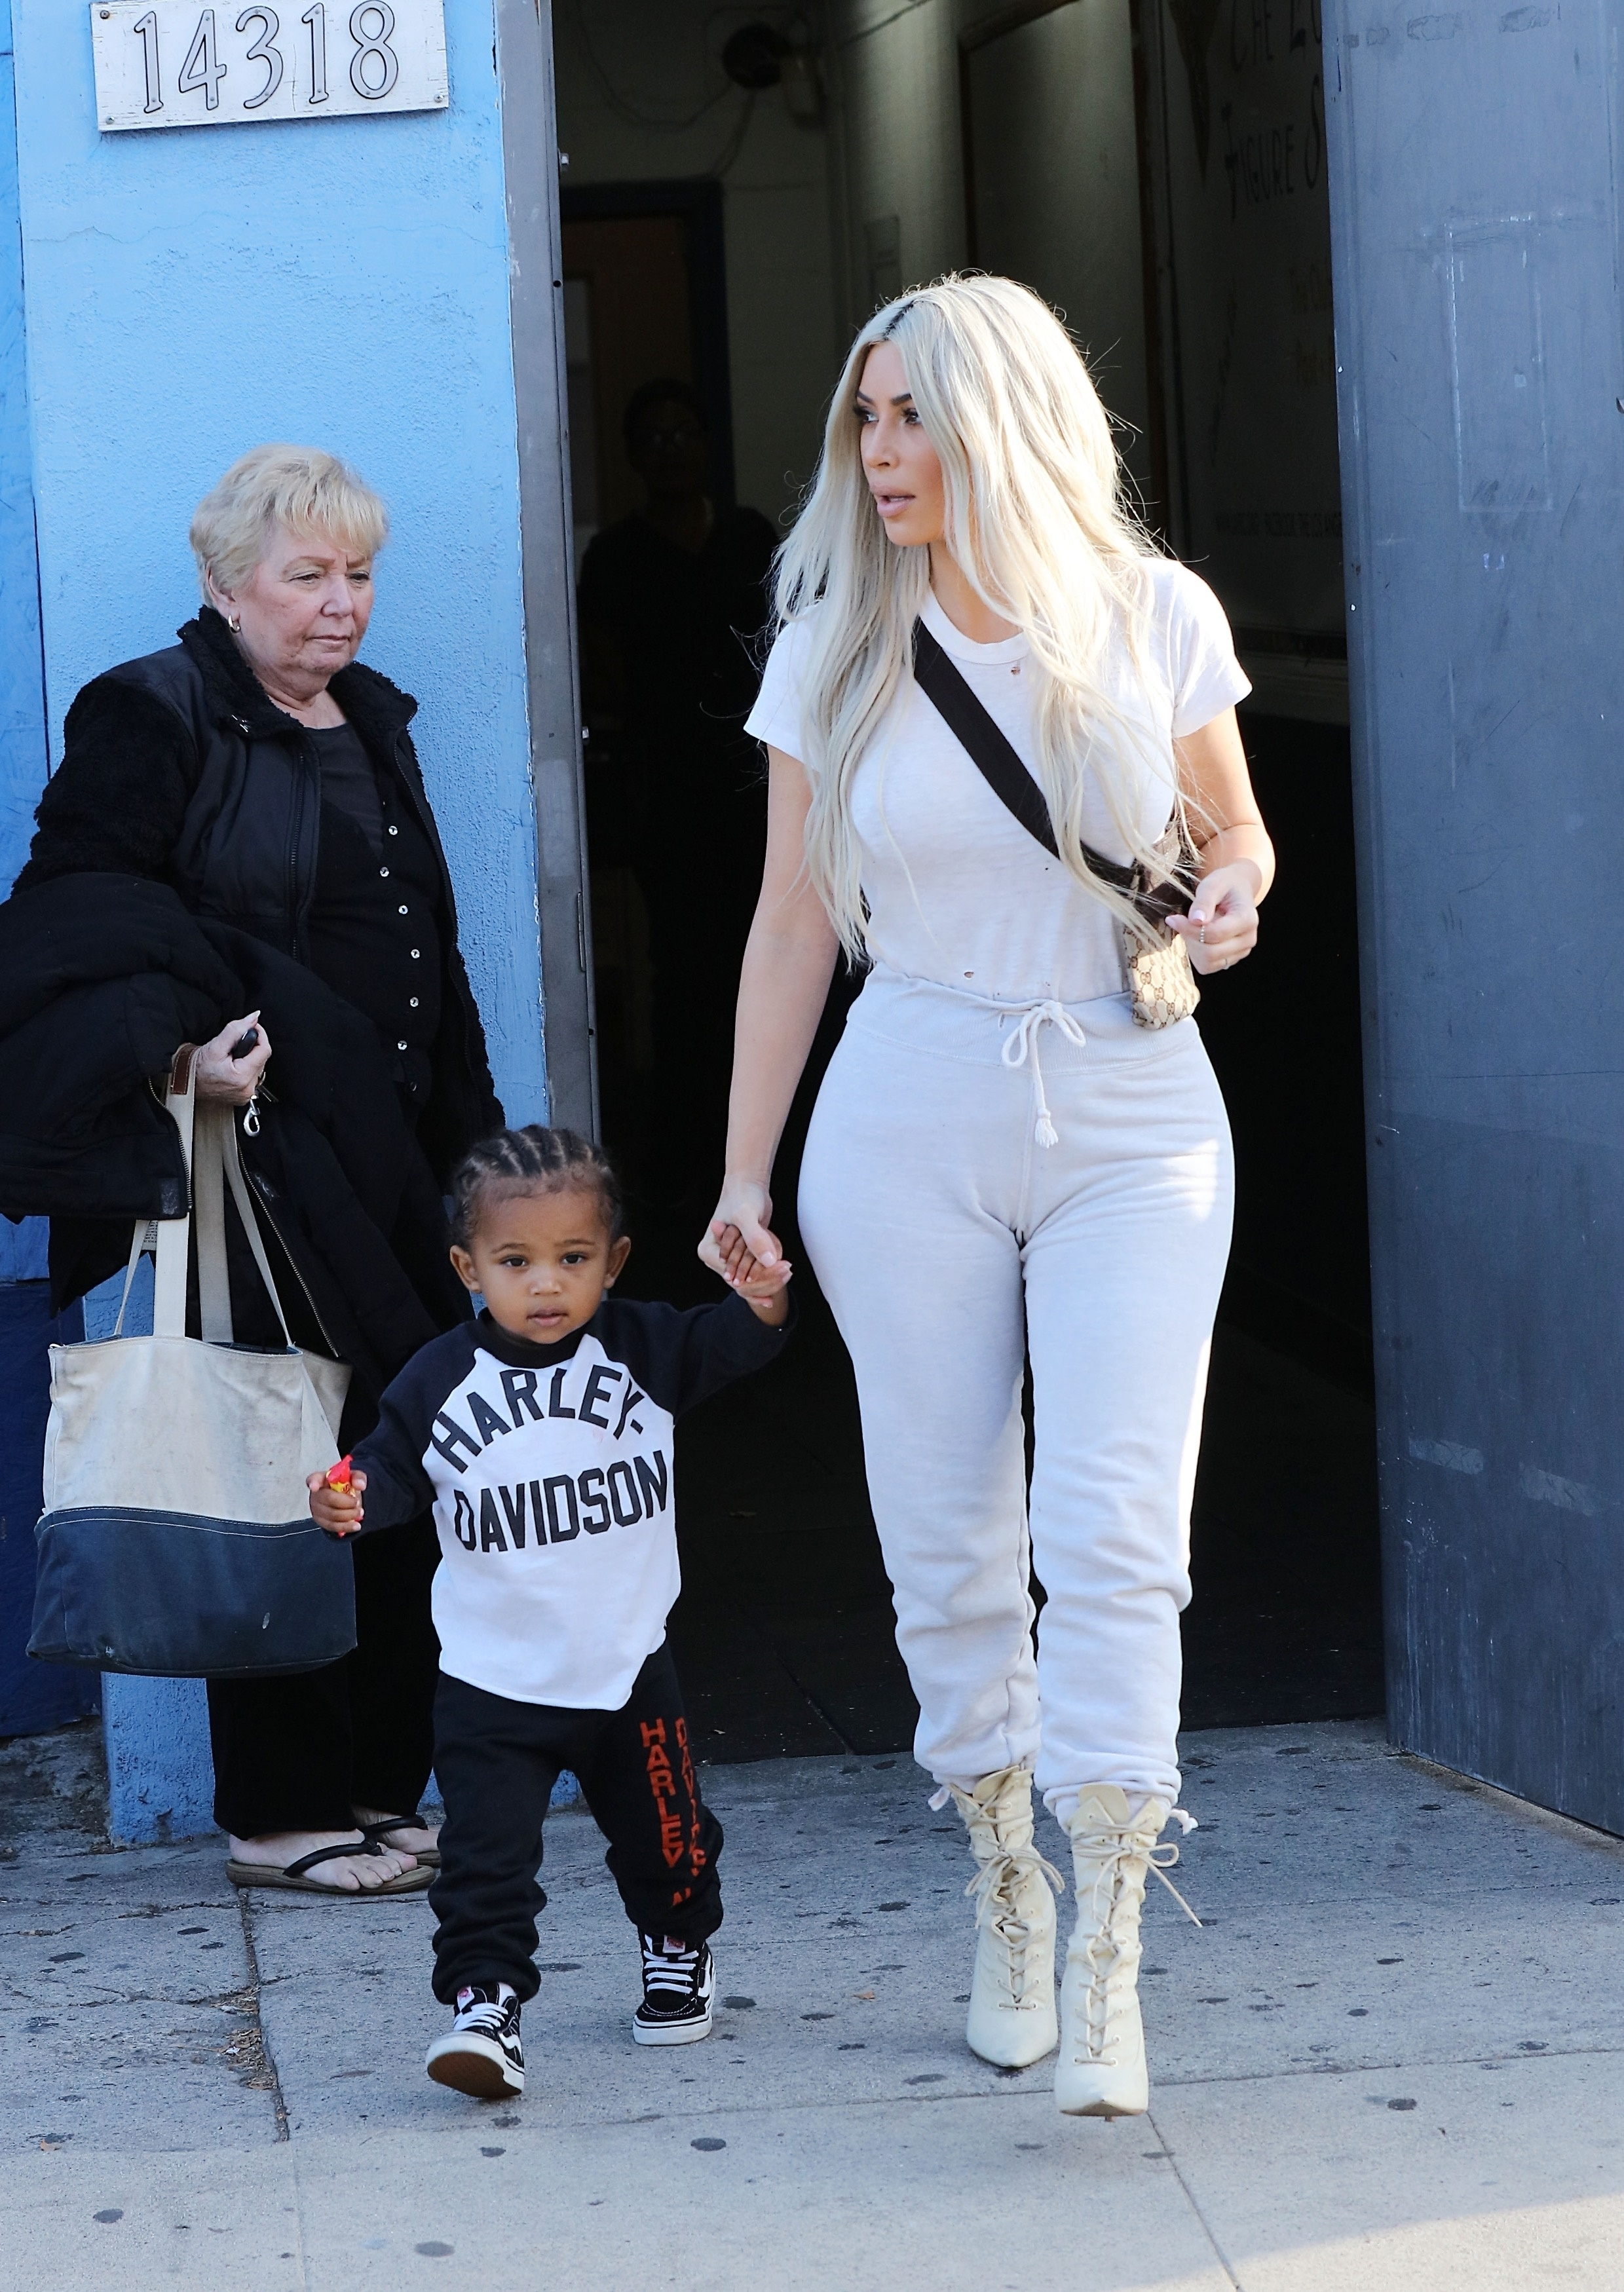 Kim Kardashian exits Iceland Ice Skating Center in Van Nuys with Saint West on Sept. 21, 2017   Pictured: Kim Kardashian  BACKGRID USA 21 SEPTEMBER 2017   USA: +1 310 798 9111 / usasales@backgrid.com  UK: +44 208 344 2007 / uksales@backgrid.com  *UK Clients   Pictures Containing Children Please Pixelate Face Prior To Publication*